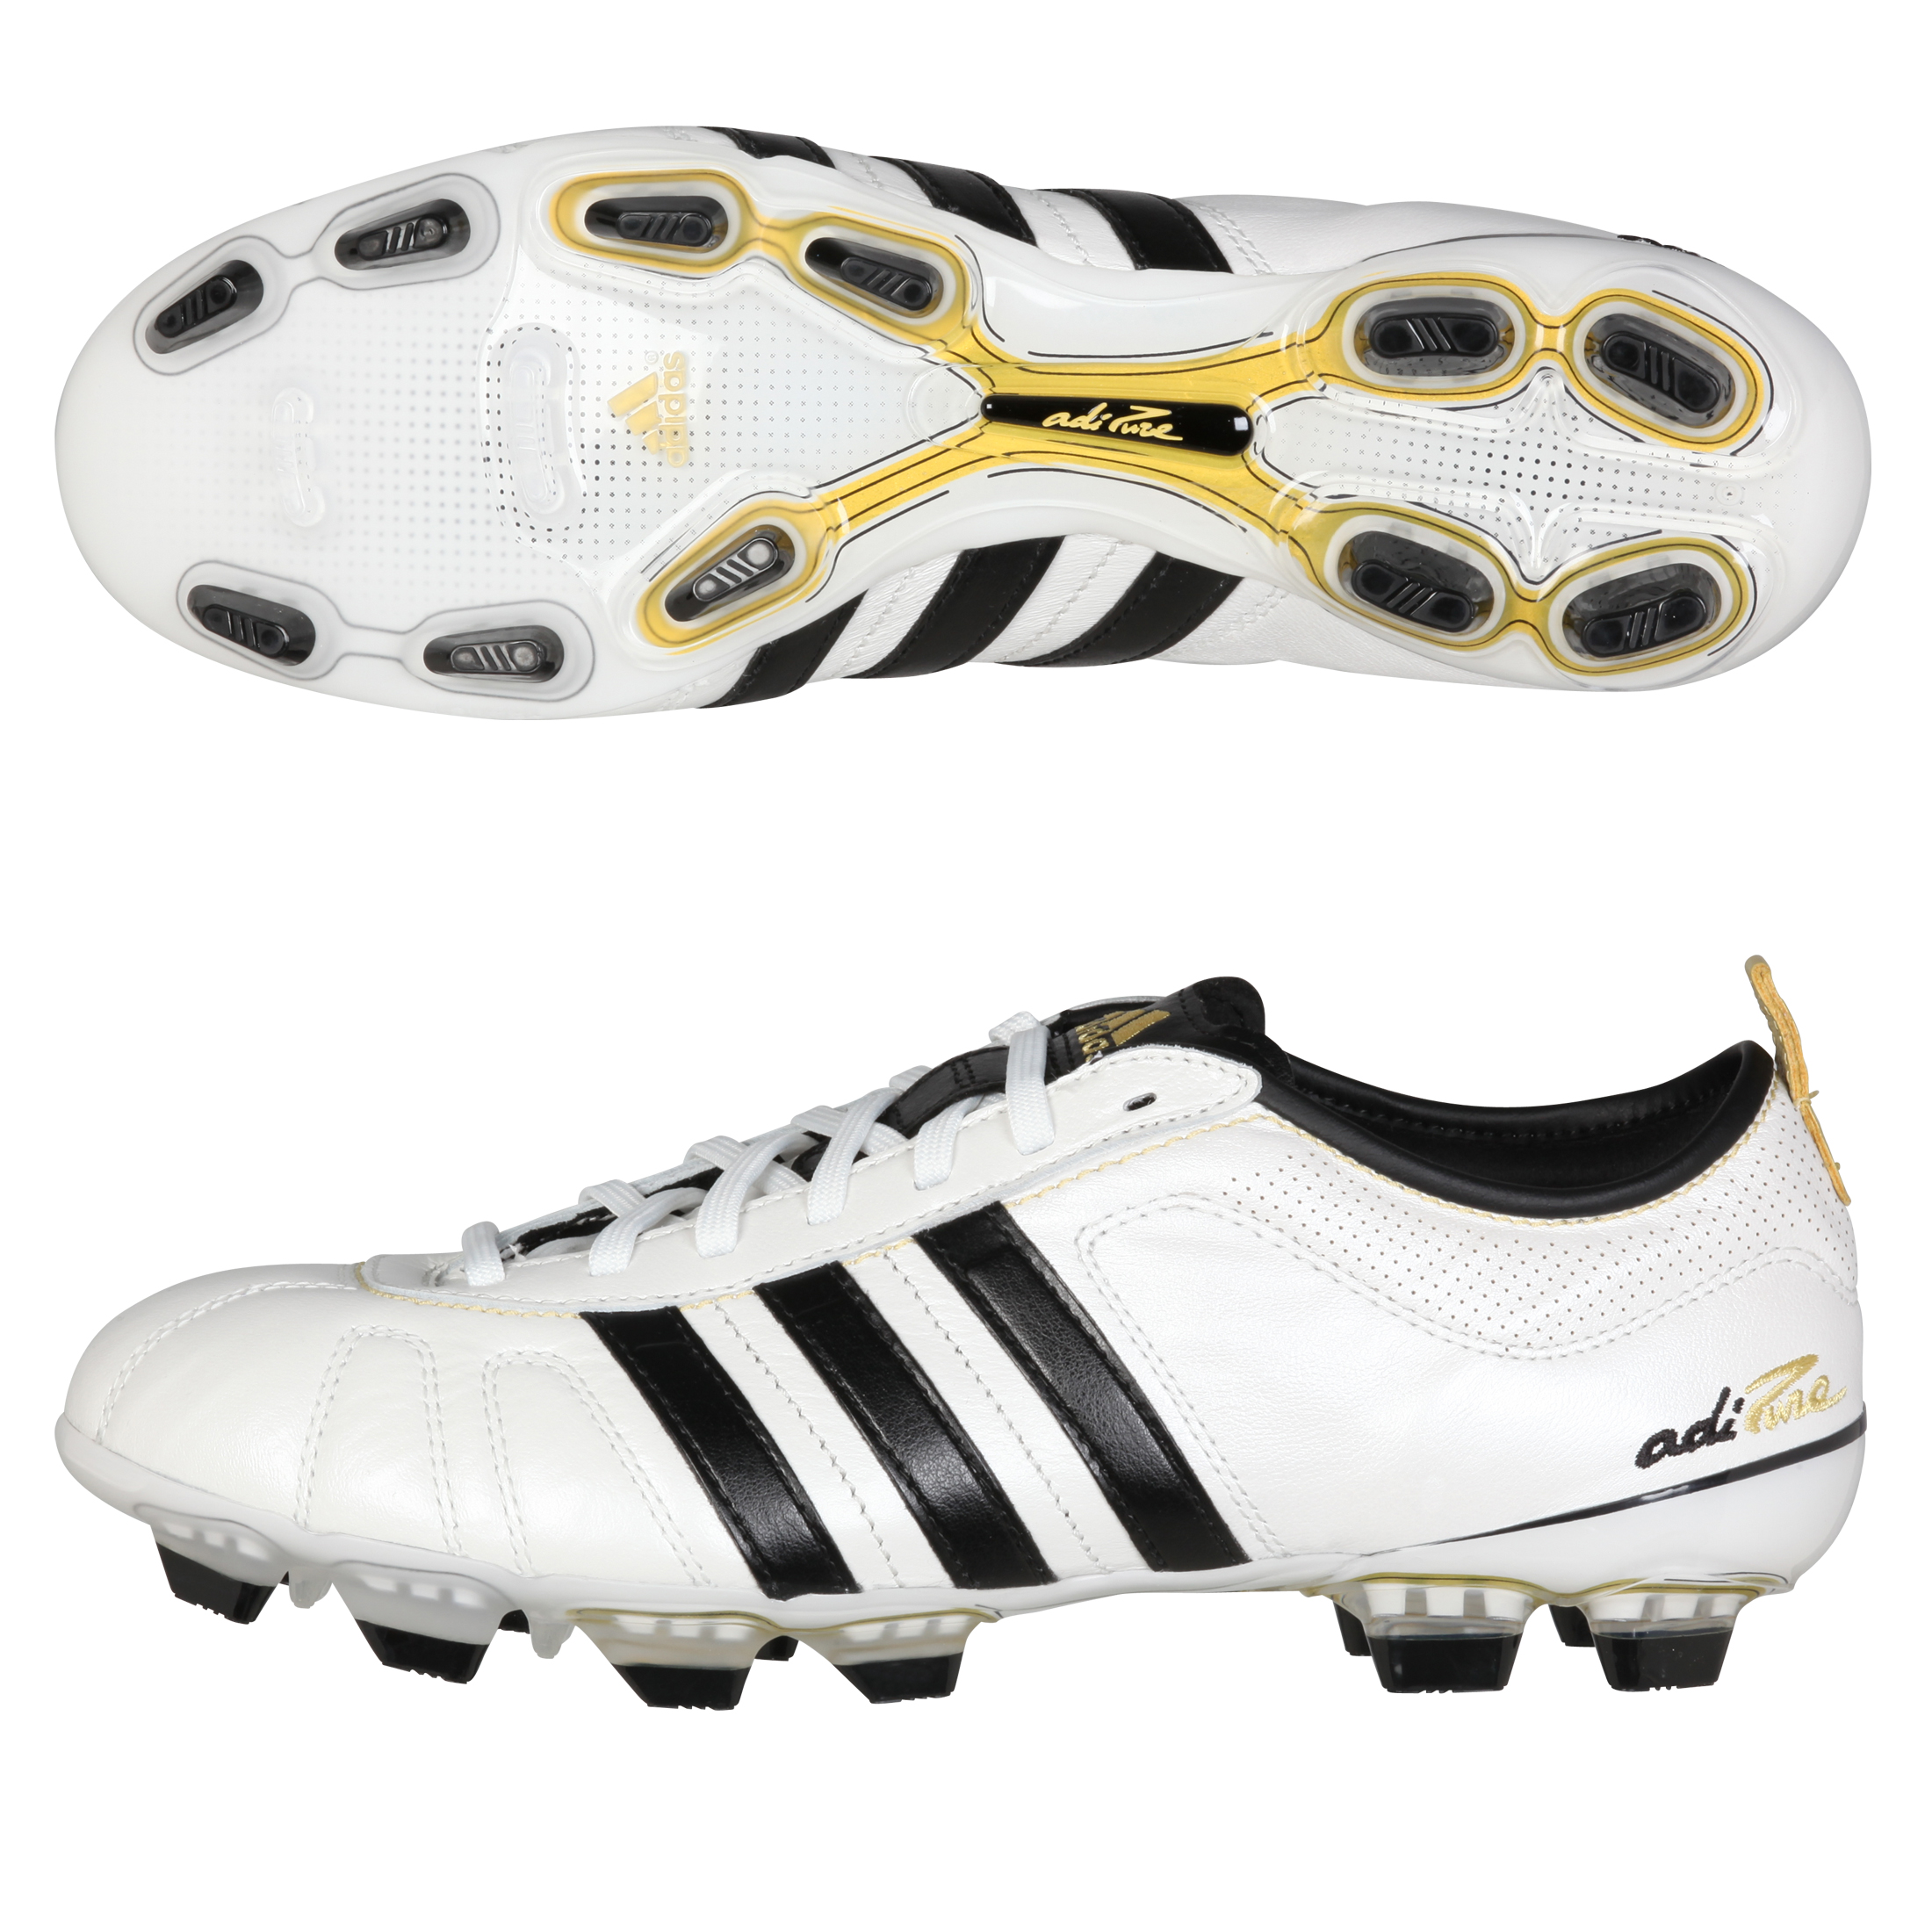 adidas adiPURE IV TRX Firm Ground Football Boots - Zero Met/Black/Matte Gold